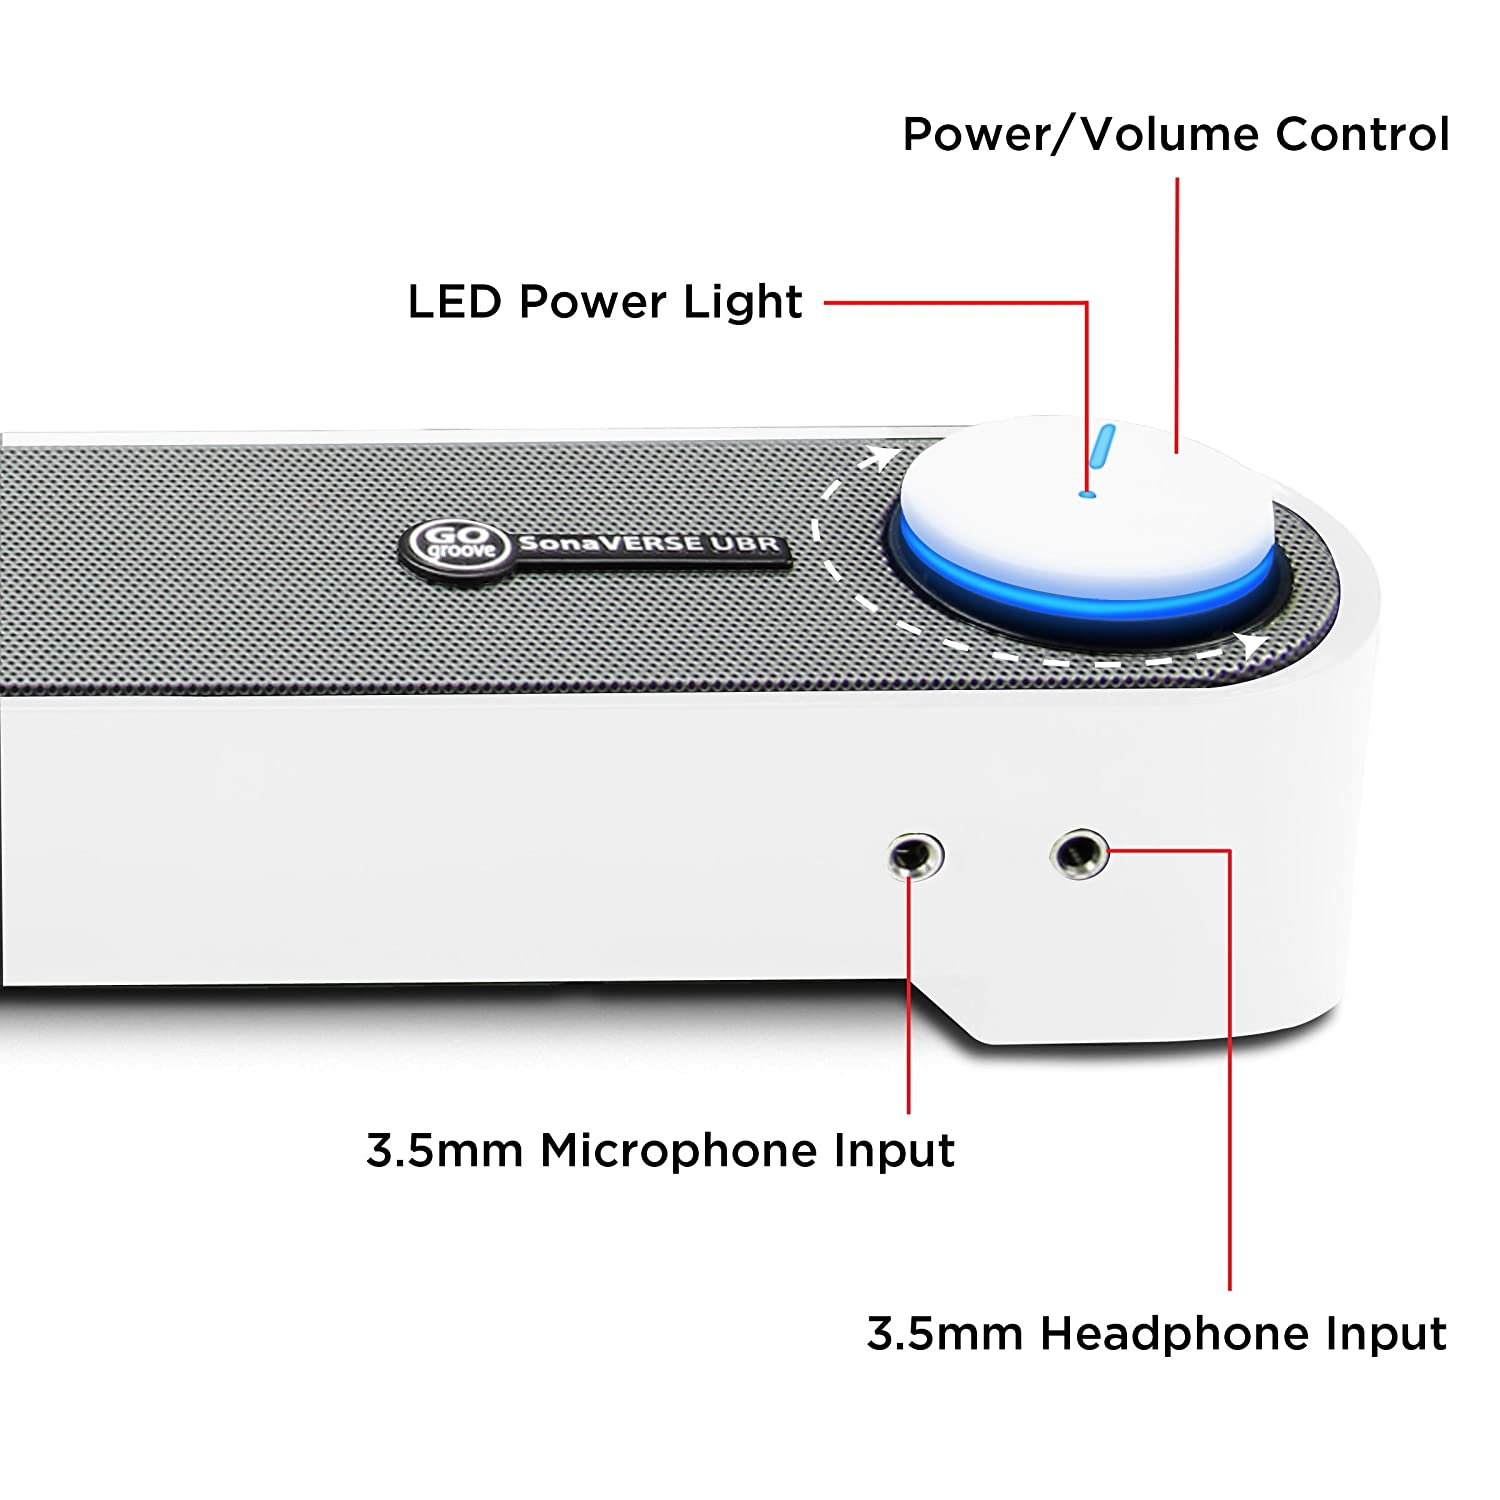 Gogroove Computer Usb Powered Mini Sound Bar Sonaverse Ubr Wired Front Wiring Diagram Soundbar Speaker 165 W